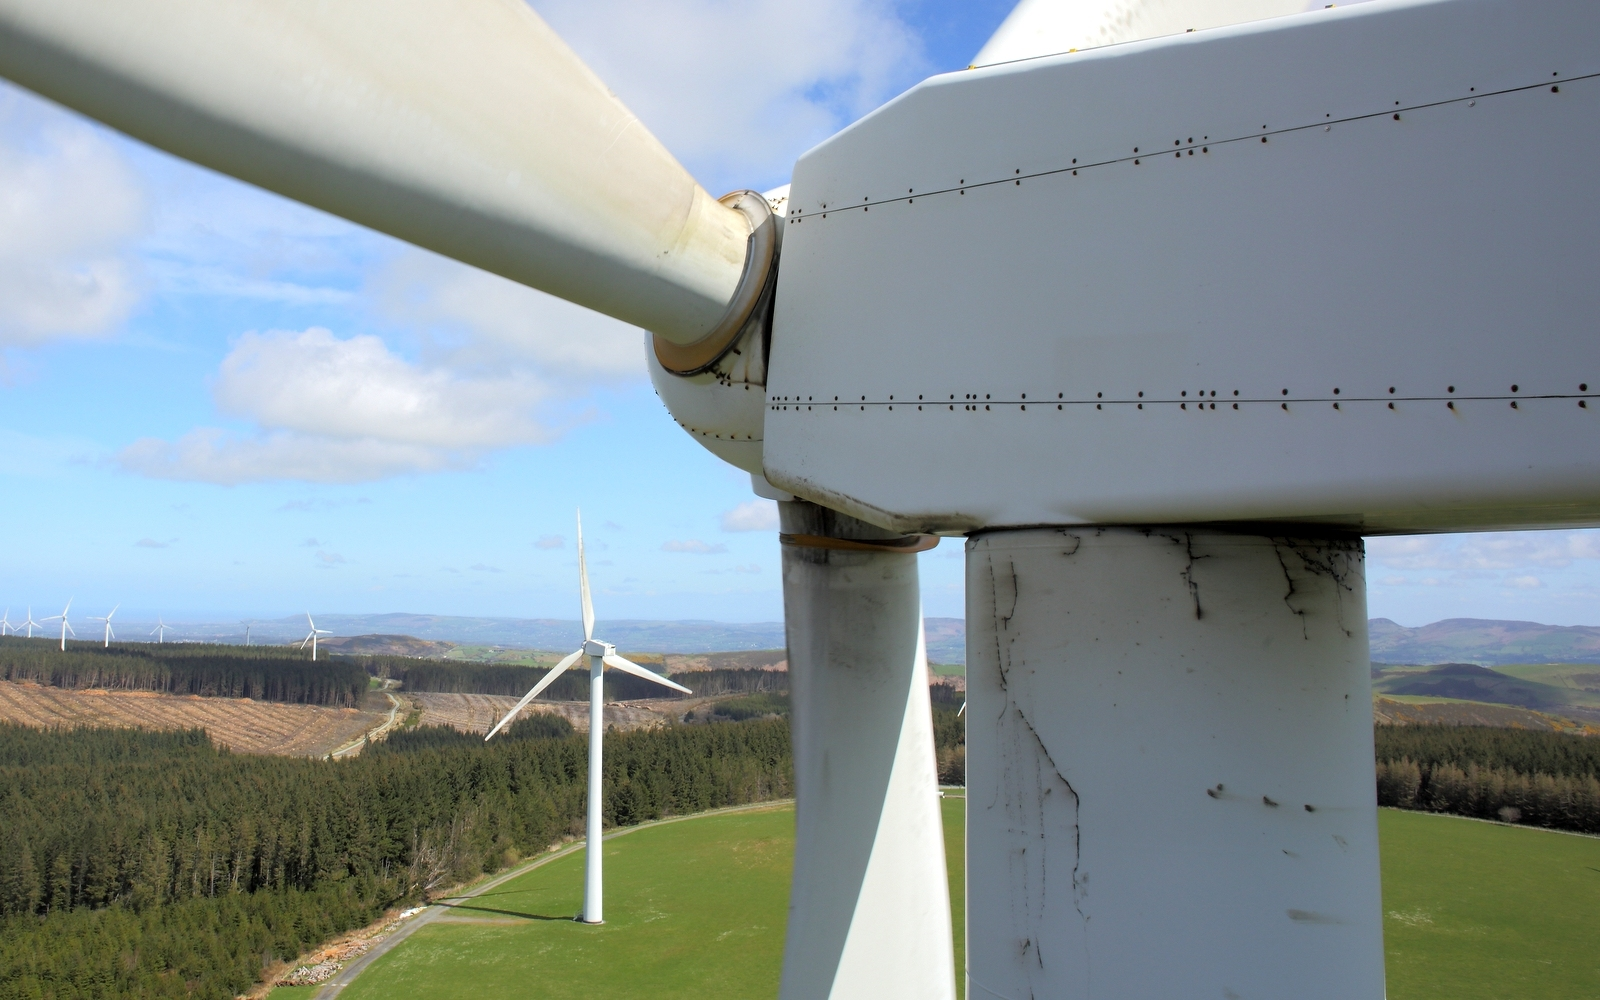 windturbine-inspection-maintenance-longstaff-media-drone-aerial.jpg#asset:244